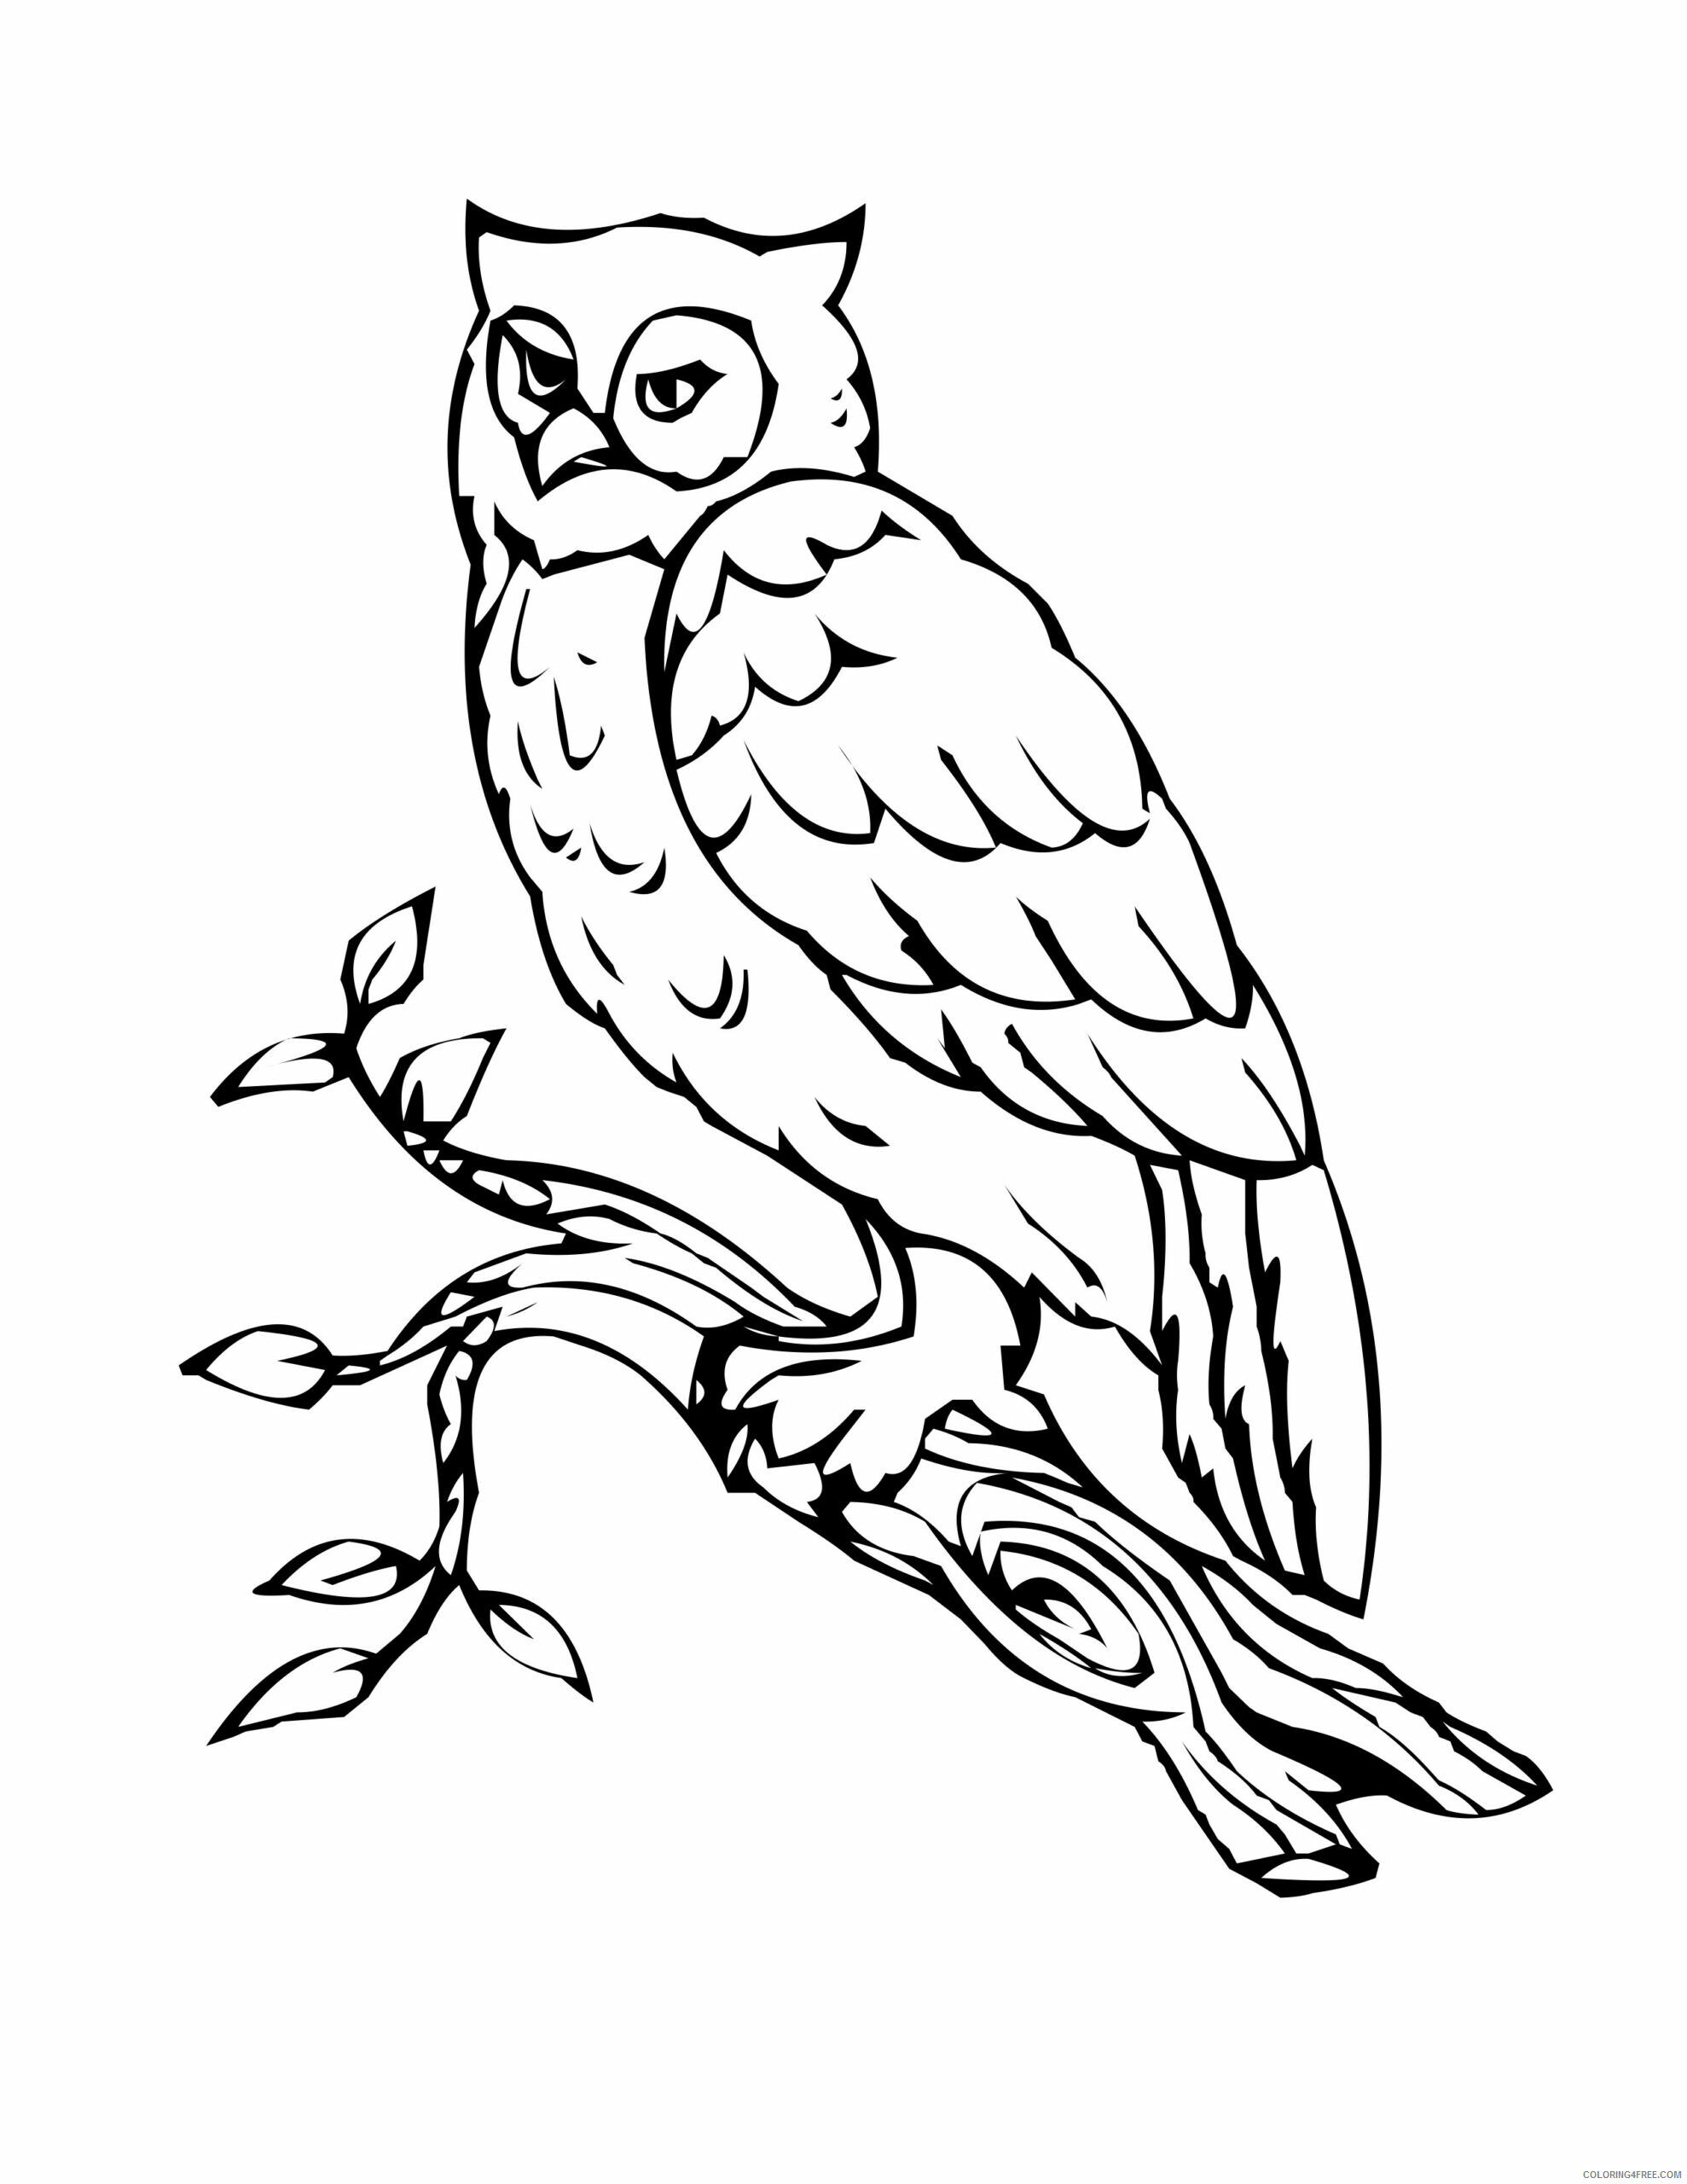 Owl Coloring Pages Animal Printable Sheets Free Owl 2021 3631 Coloring4free